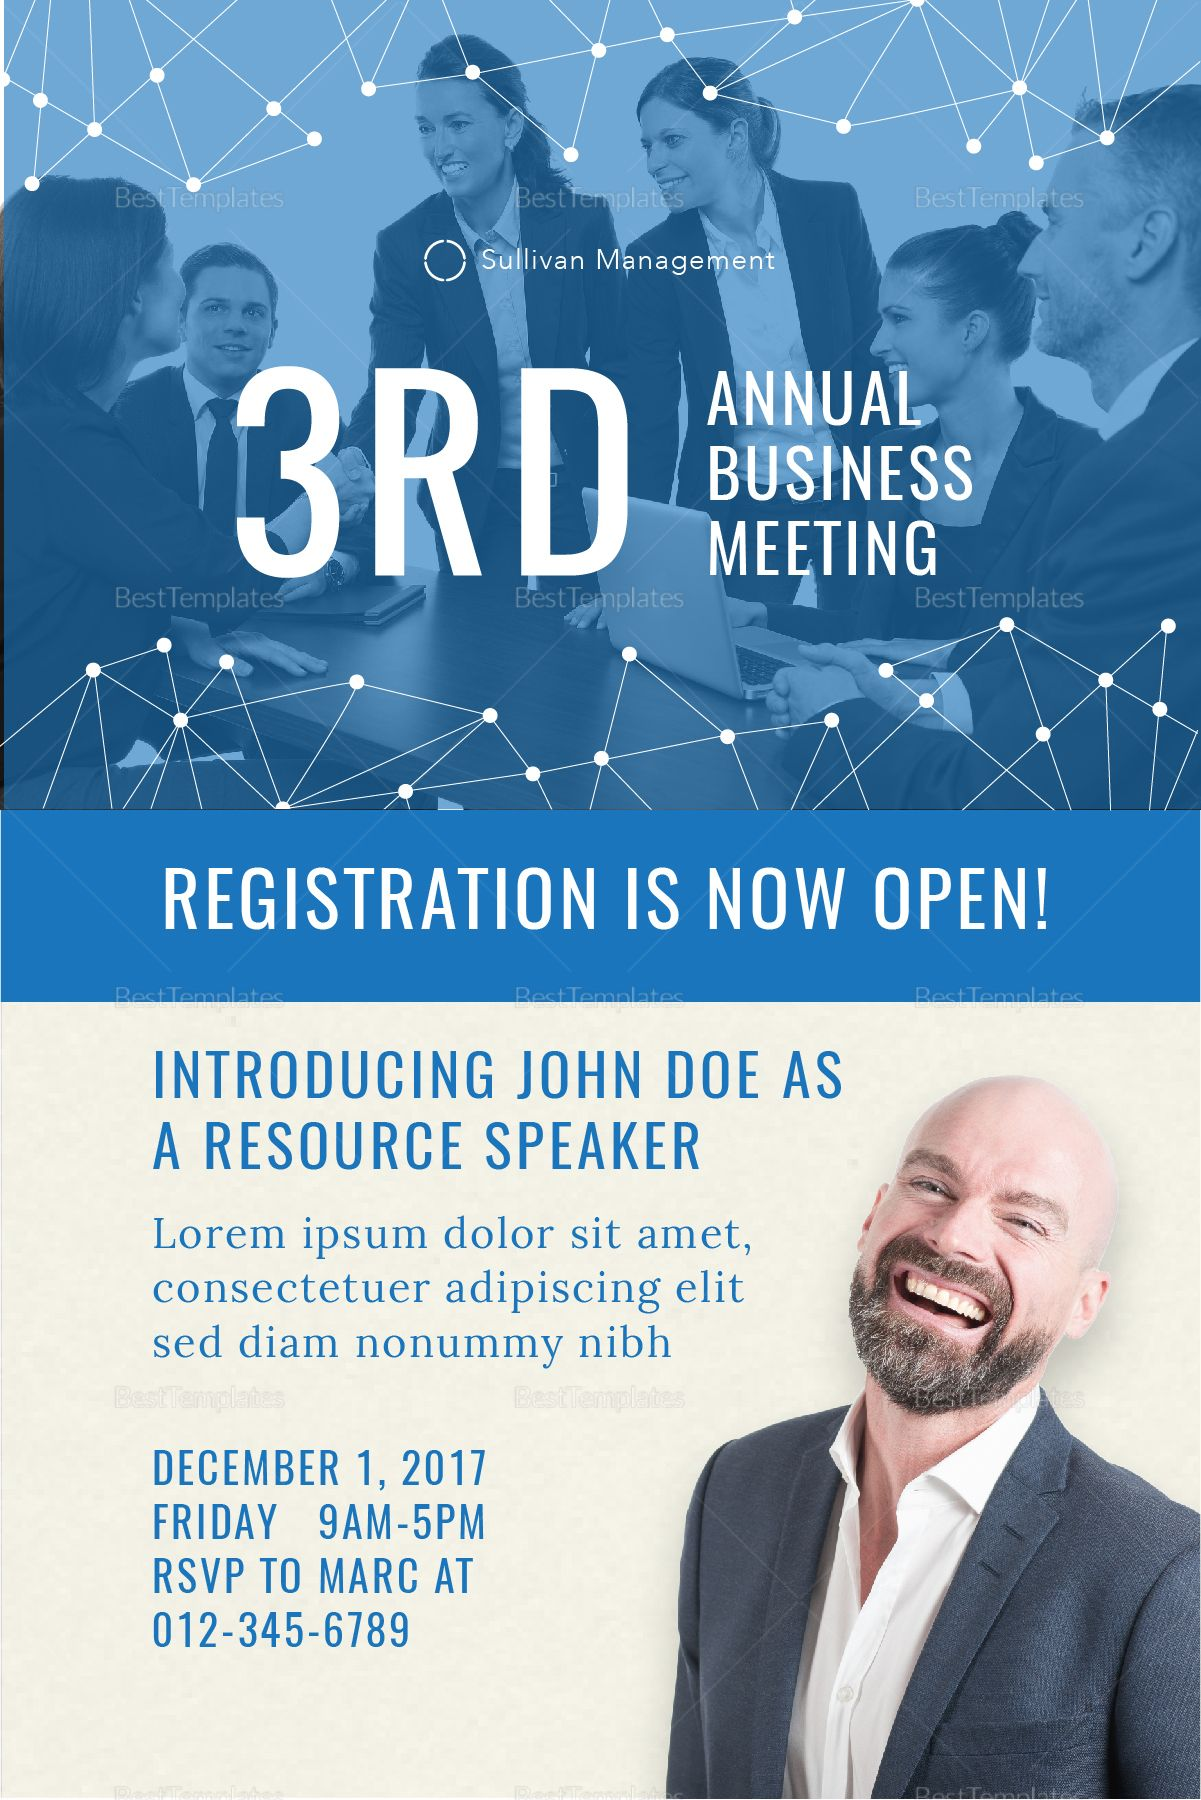 Annual Business Meeting Invitation Template Event poster